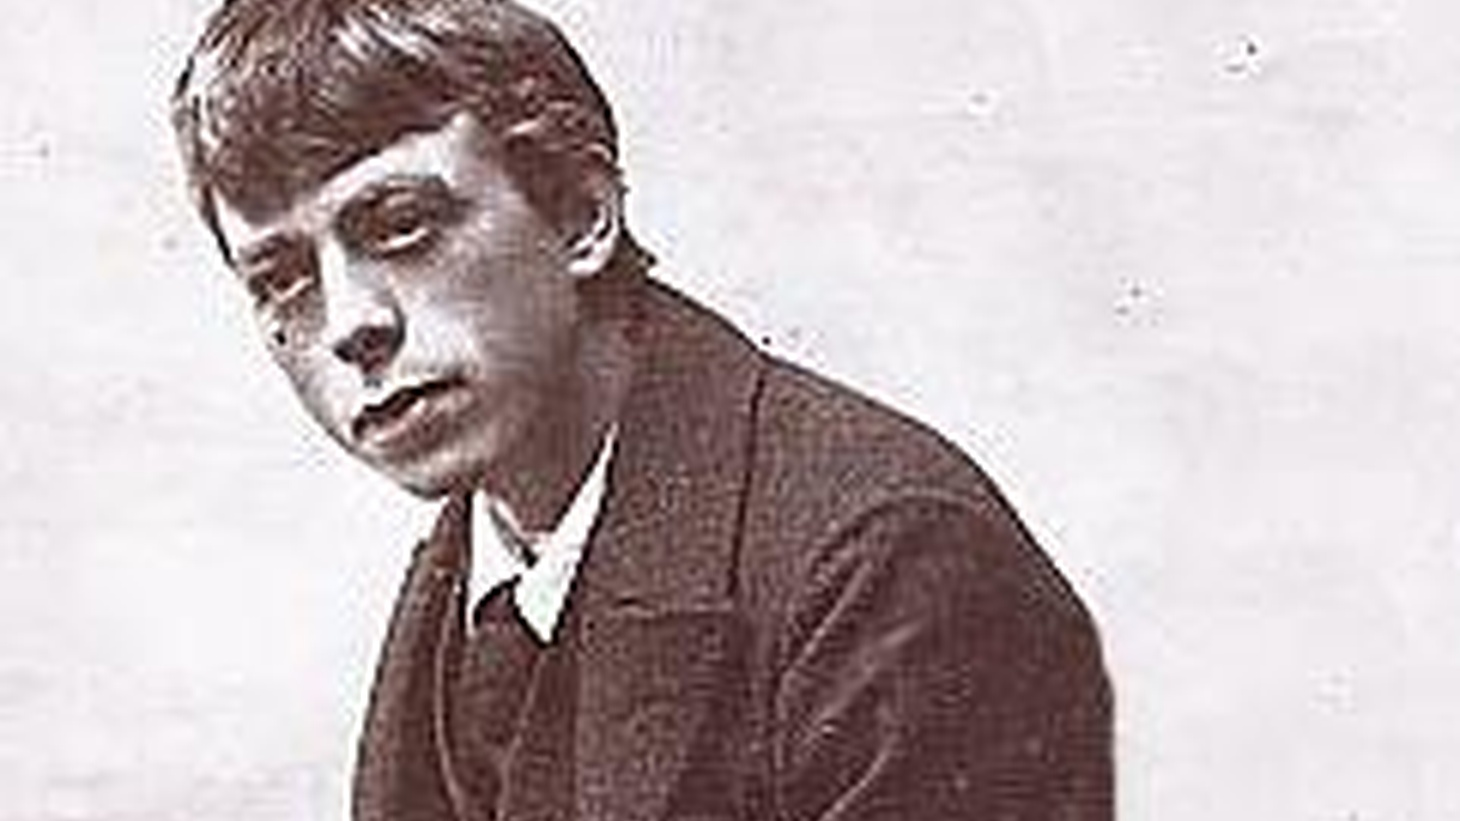 A tribute to the great (and virtually unknown) Swiss writer Robert Walser, who influenced Kafka and inspired Hermann Hesse. WritersSusan Bernofsky, Deborah Eisenberg and Wayne Koestenbaum read, discuss and worship Walser, a writer who is like a mouse that roared—small and fragile but out-of-this-world outrageous